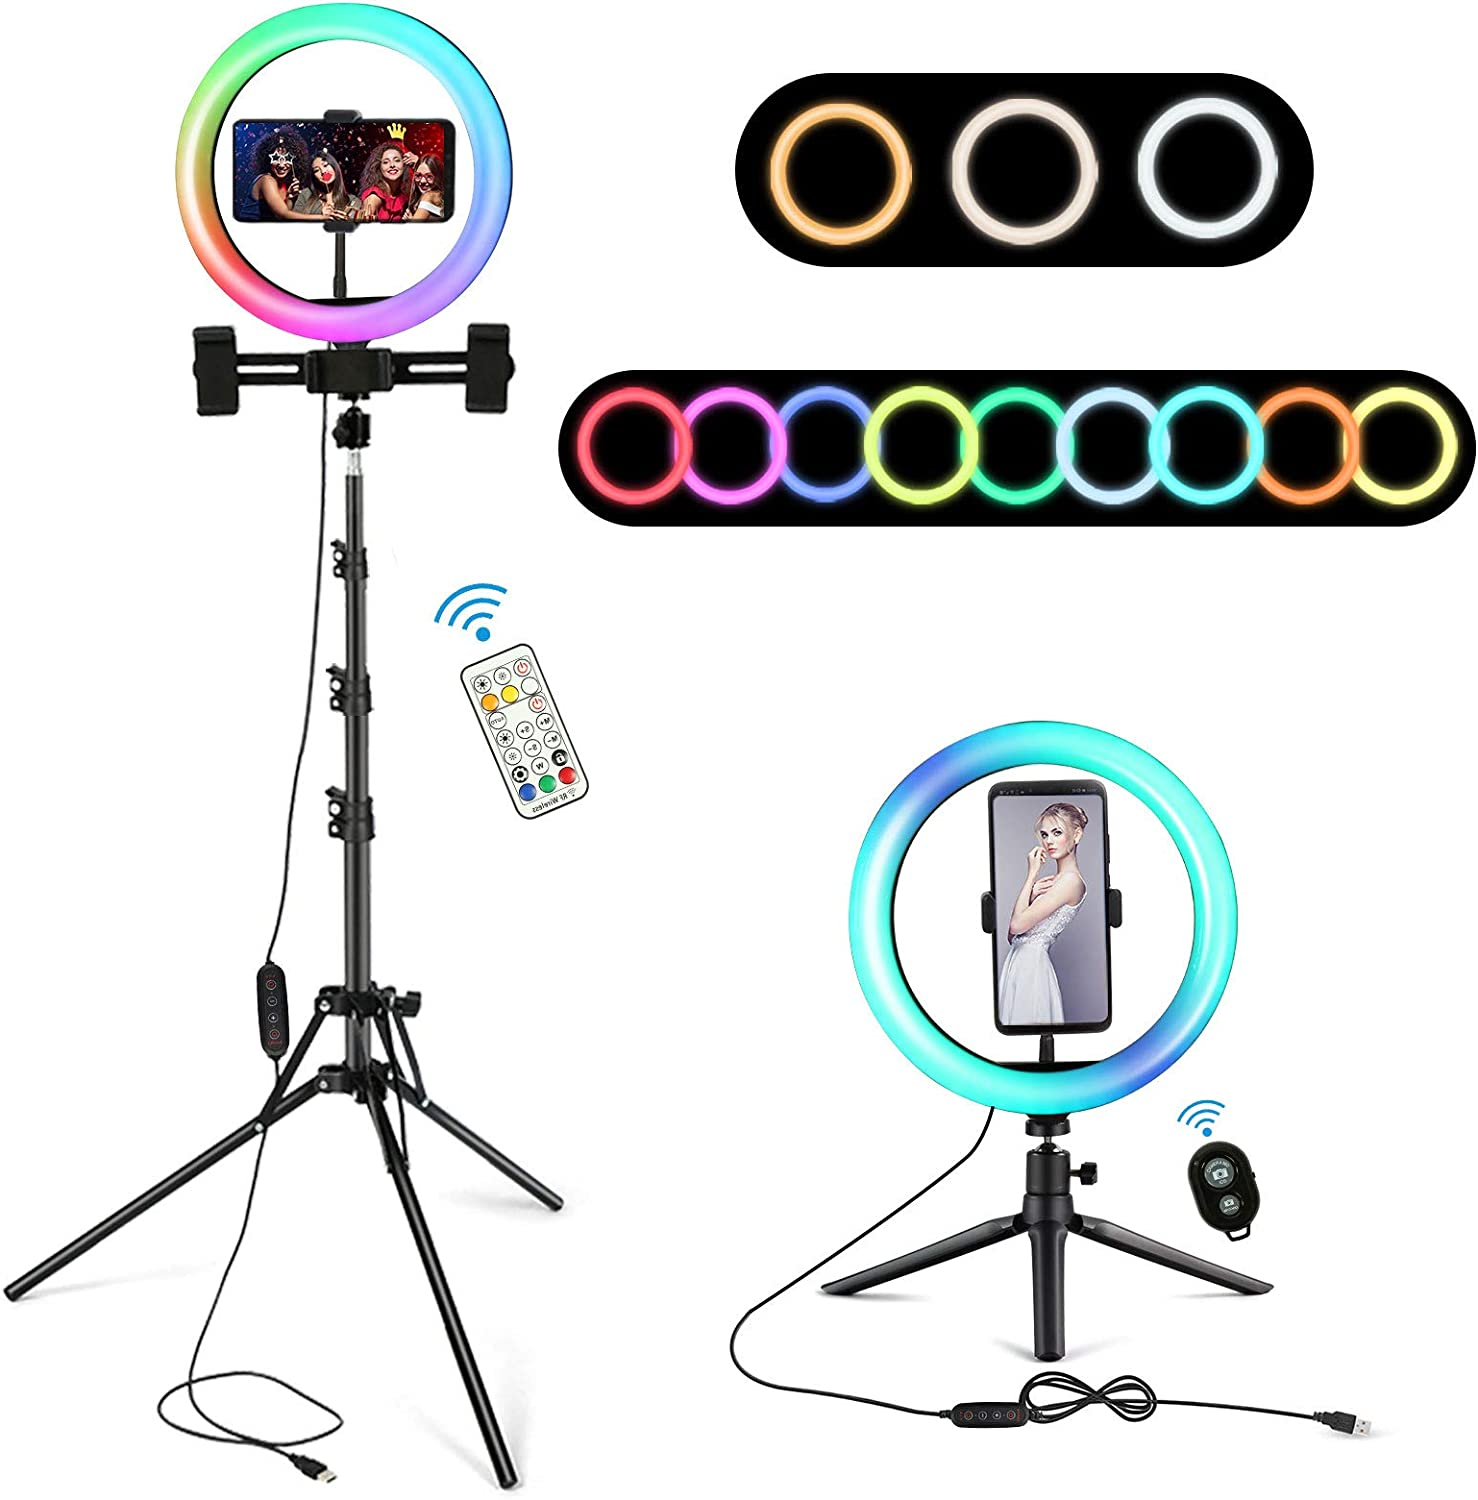 """10"""" RGB LED Ring Light with Stand, Selfie Ring Light with Two Tripod Stand and Phone Holder & 10 Brightness Level & Camera Remote Shutter for TikTok/YouTube/Video/Live Stream/Makeup"""